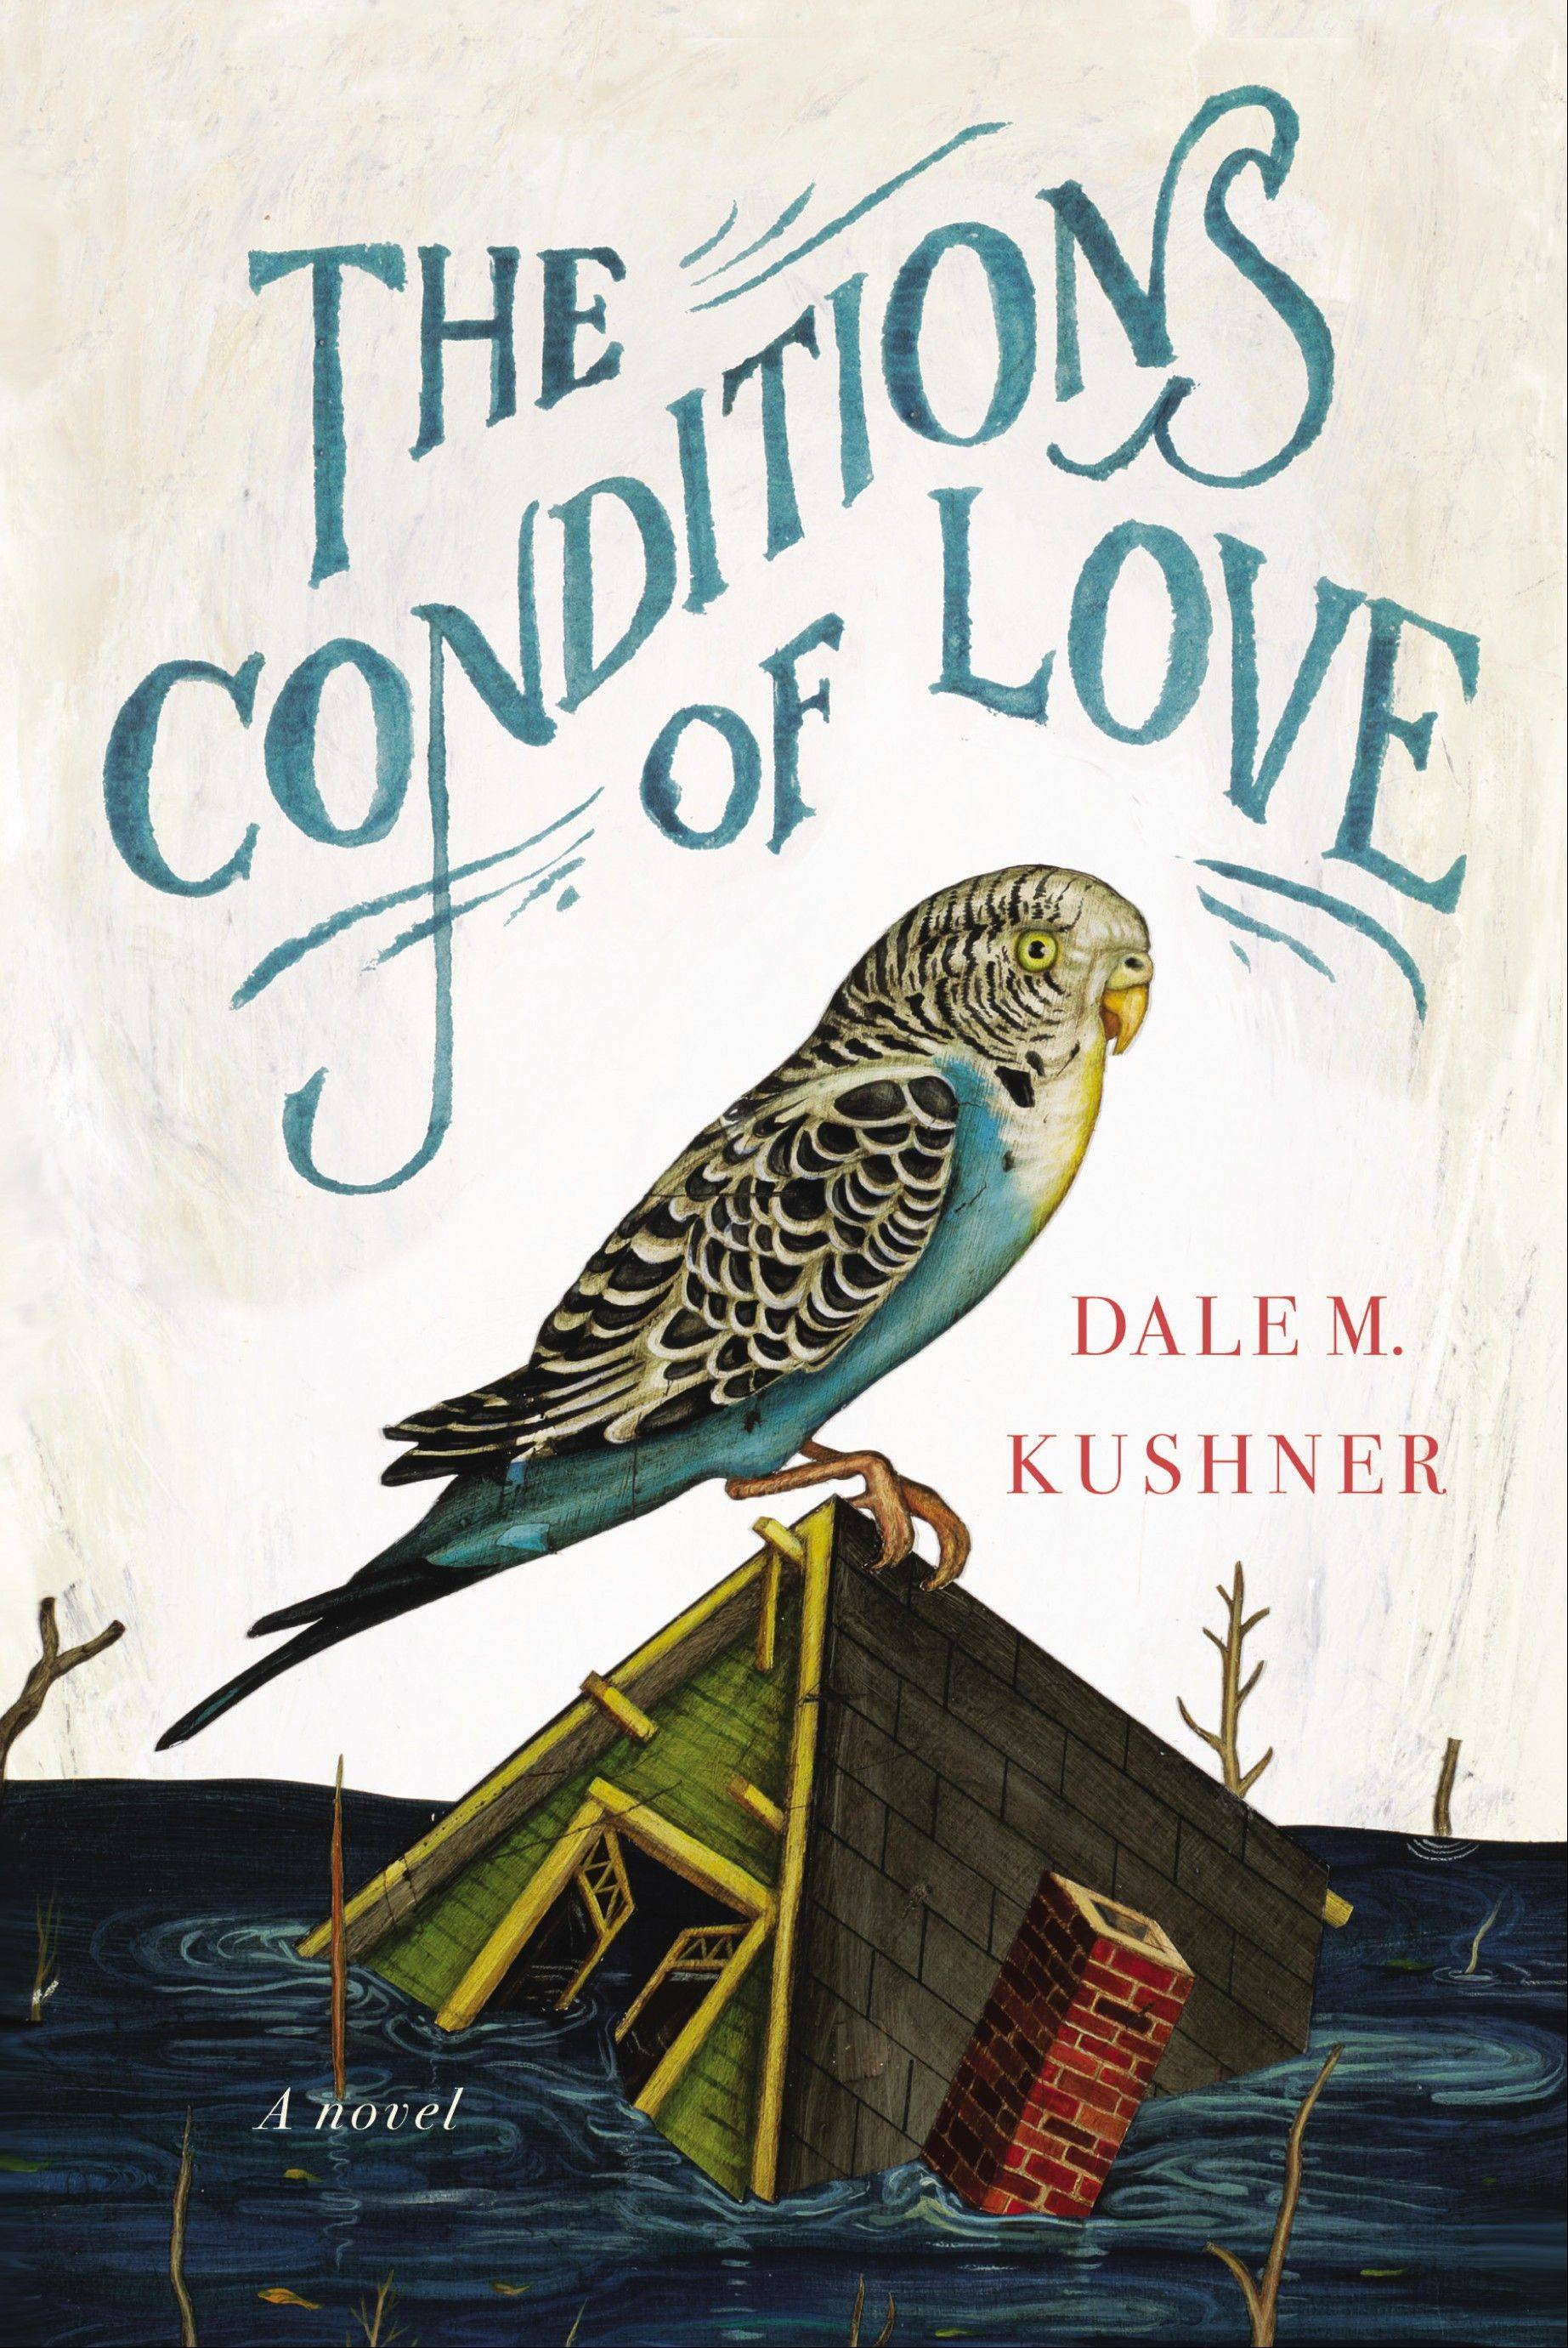 """The Conditions of Love"" by Dale M. Kushner"